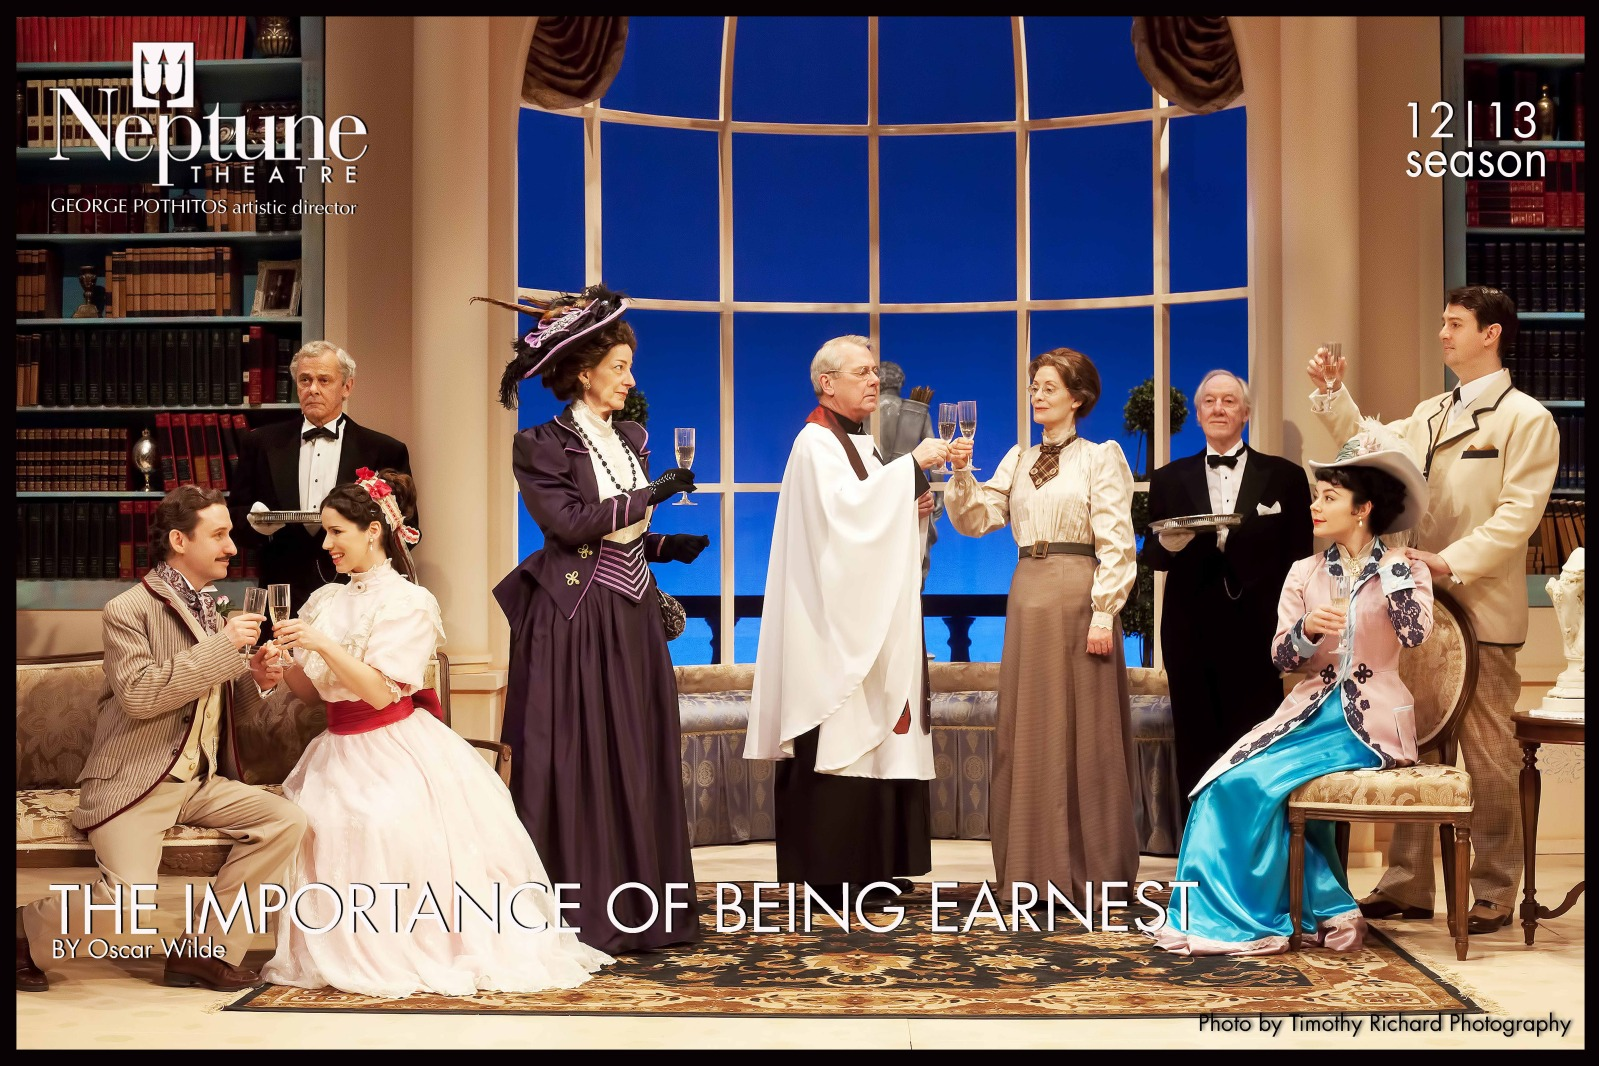 Neptune Theatre Presents: The Importance Of Being Earnest